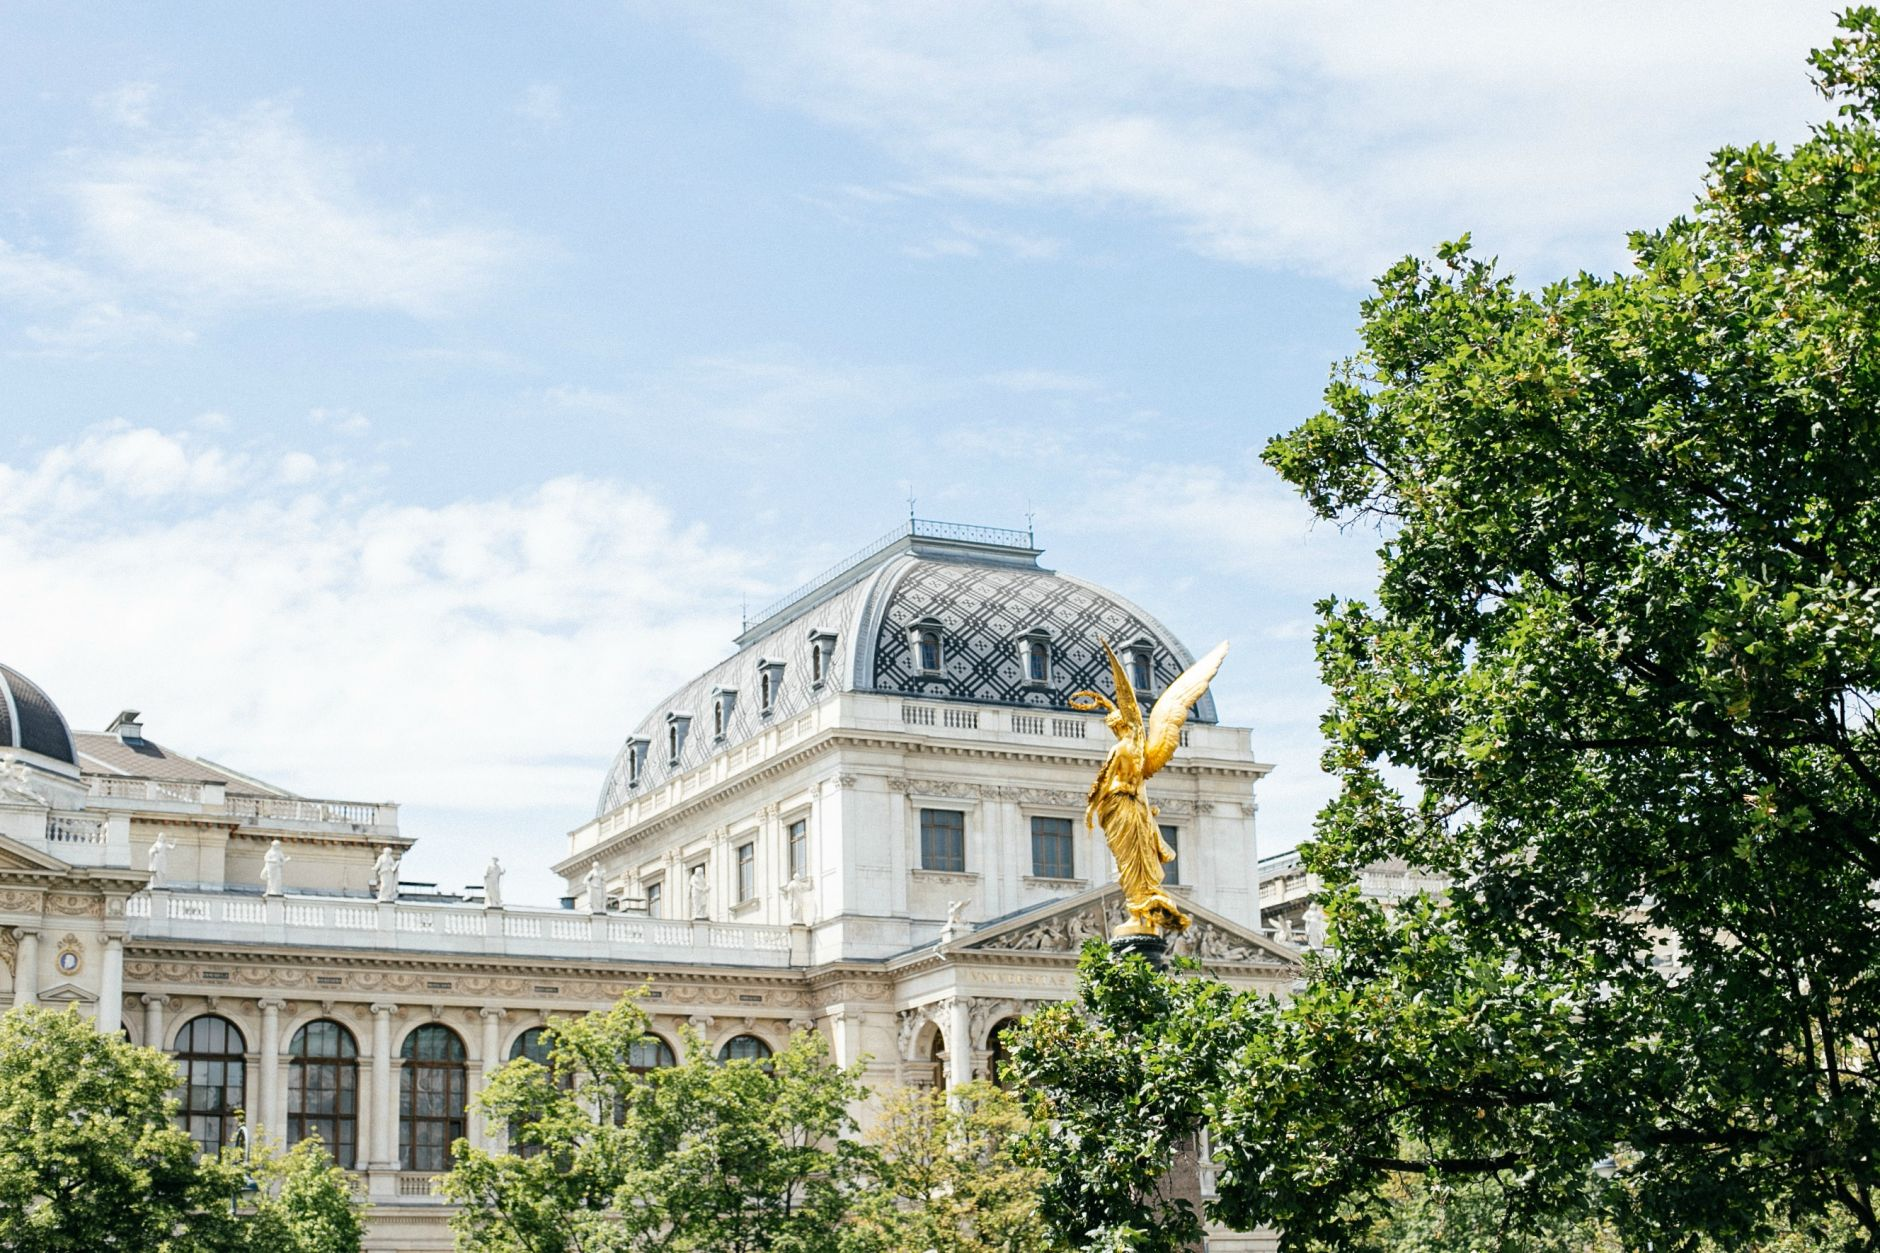 airbnb-hosting-vienna-austria-appartments-for-rent-disicouture-24